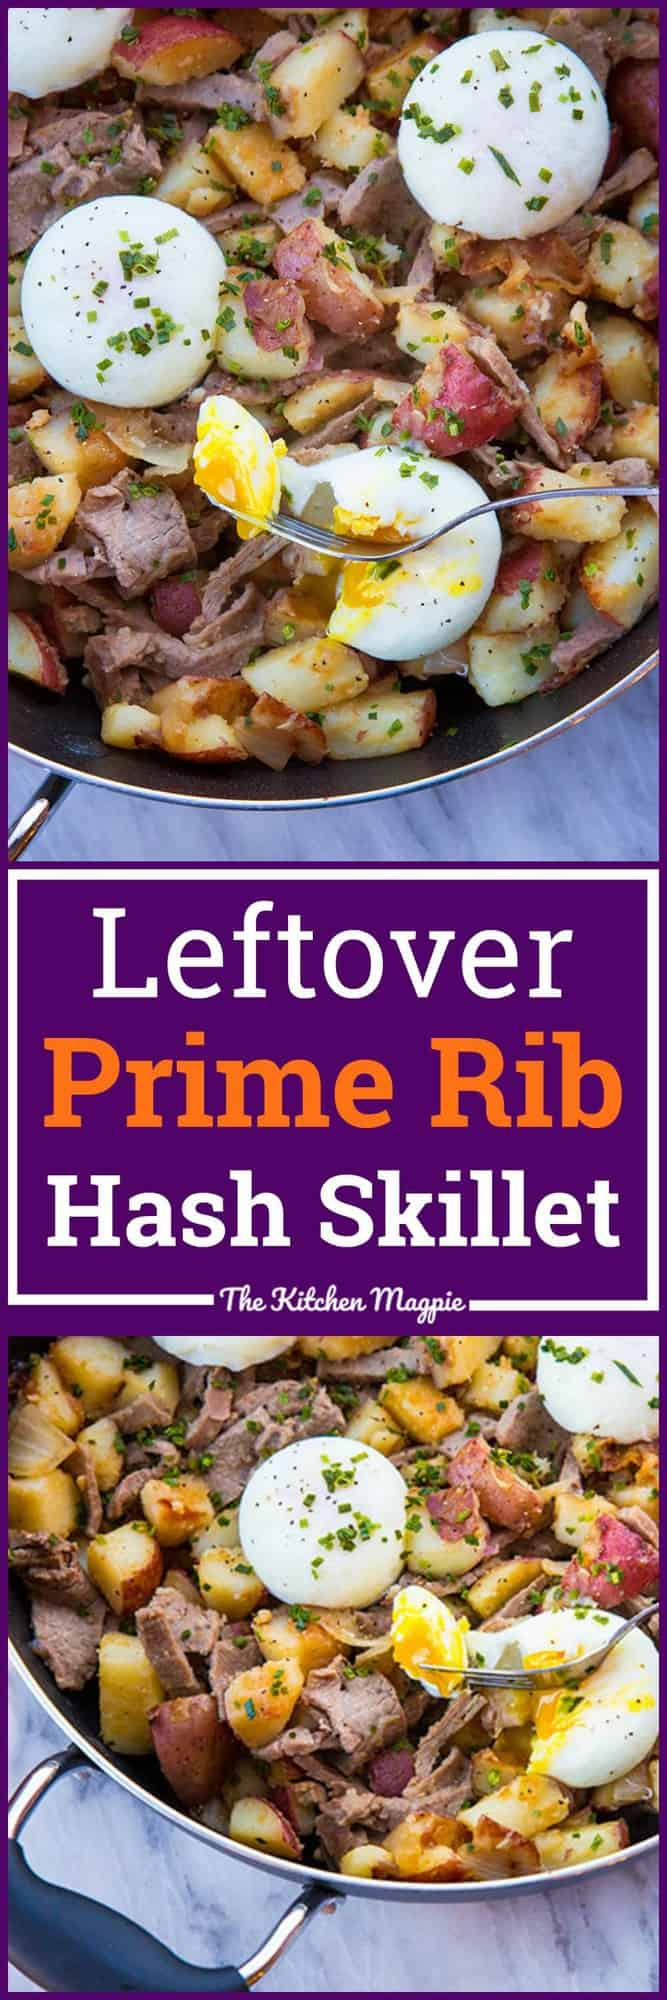 Leftover Prime Rib Hash Skillet from @kitchenmagpie. This is the perfect way to use up your leftover prime rib!